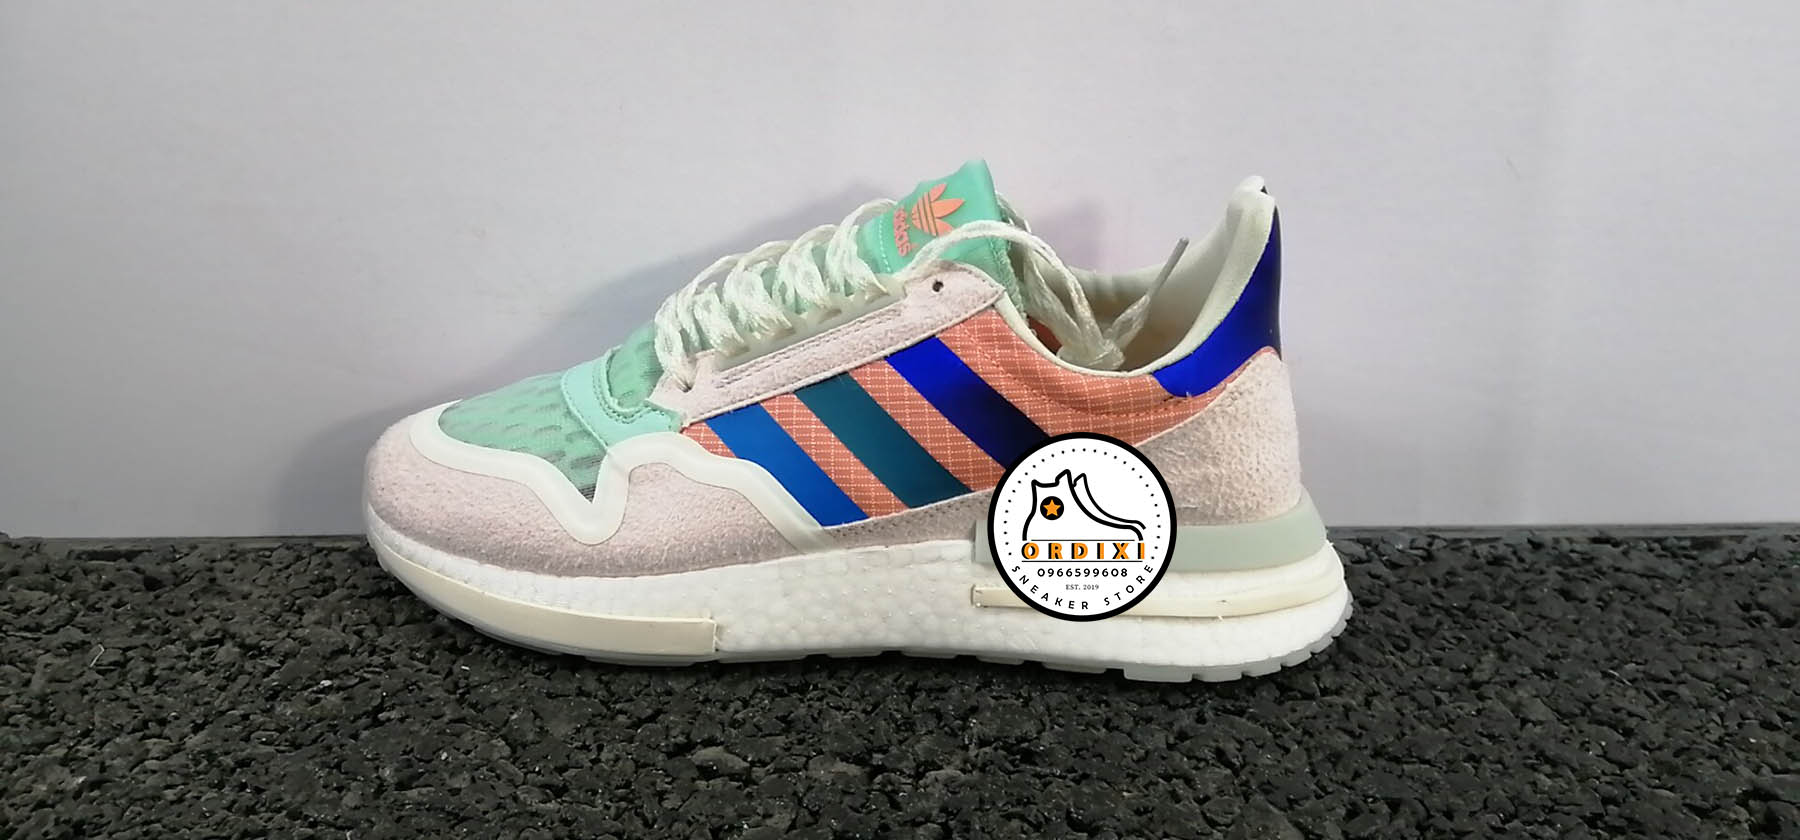 Giay-the-thaoadidas-ZX-500-x-Commonwealth-Db3510-7